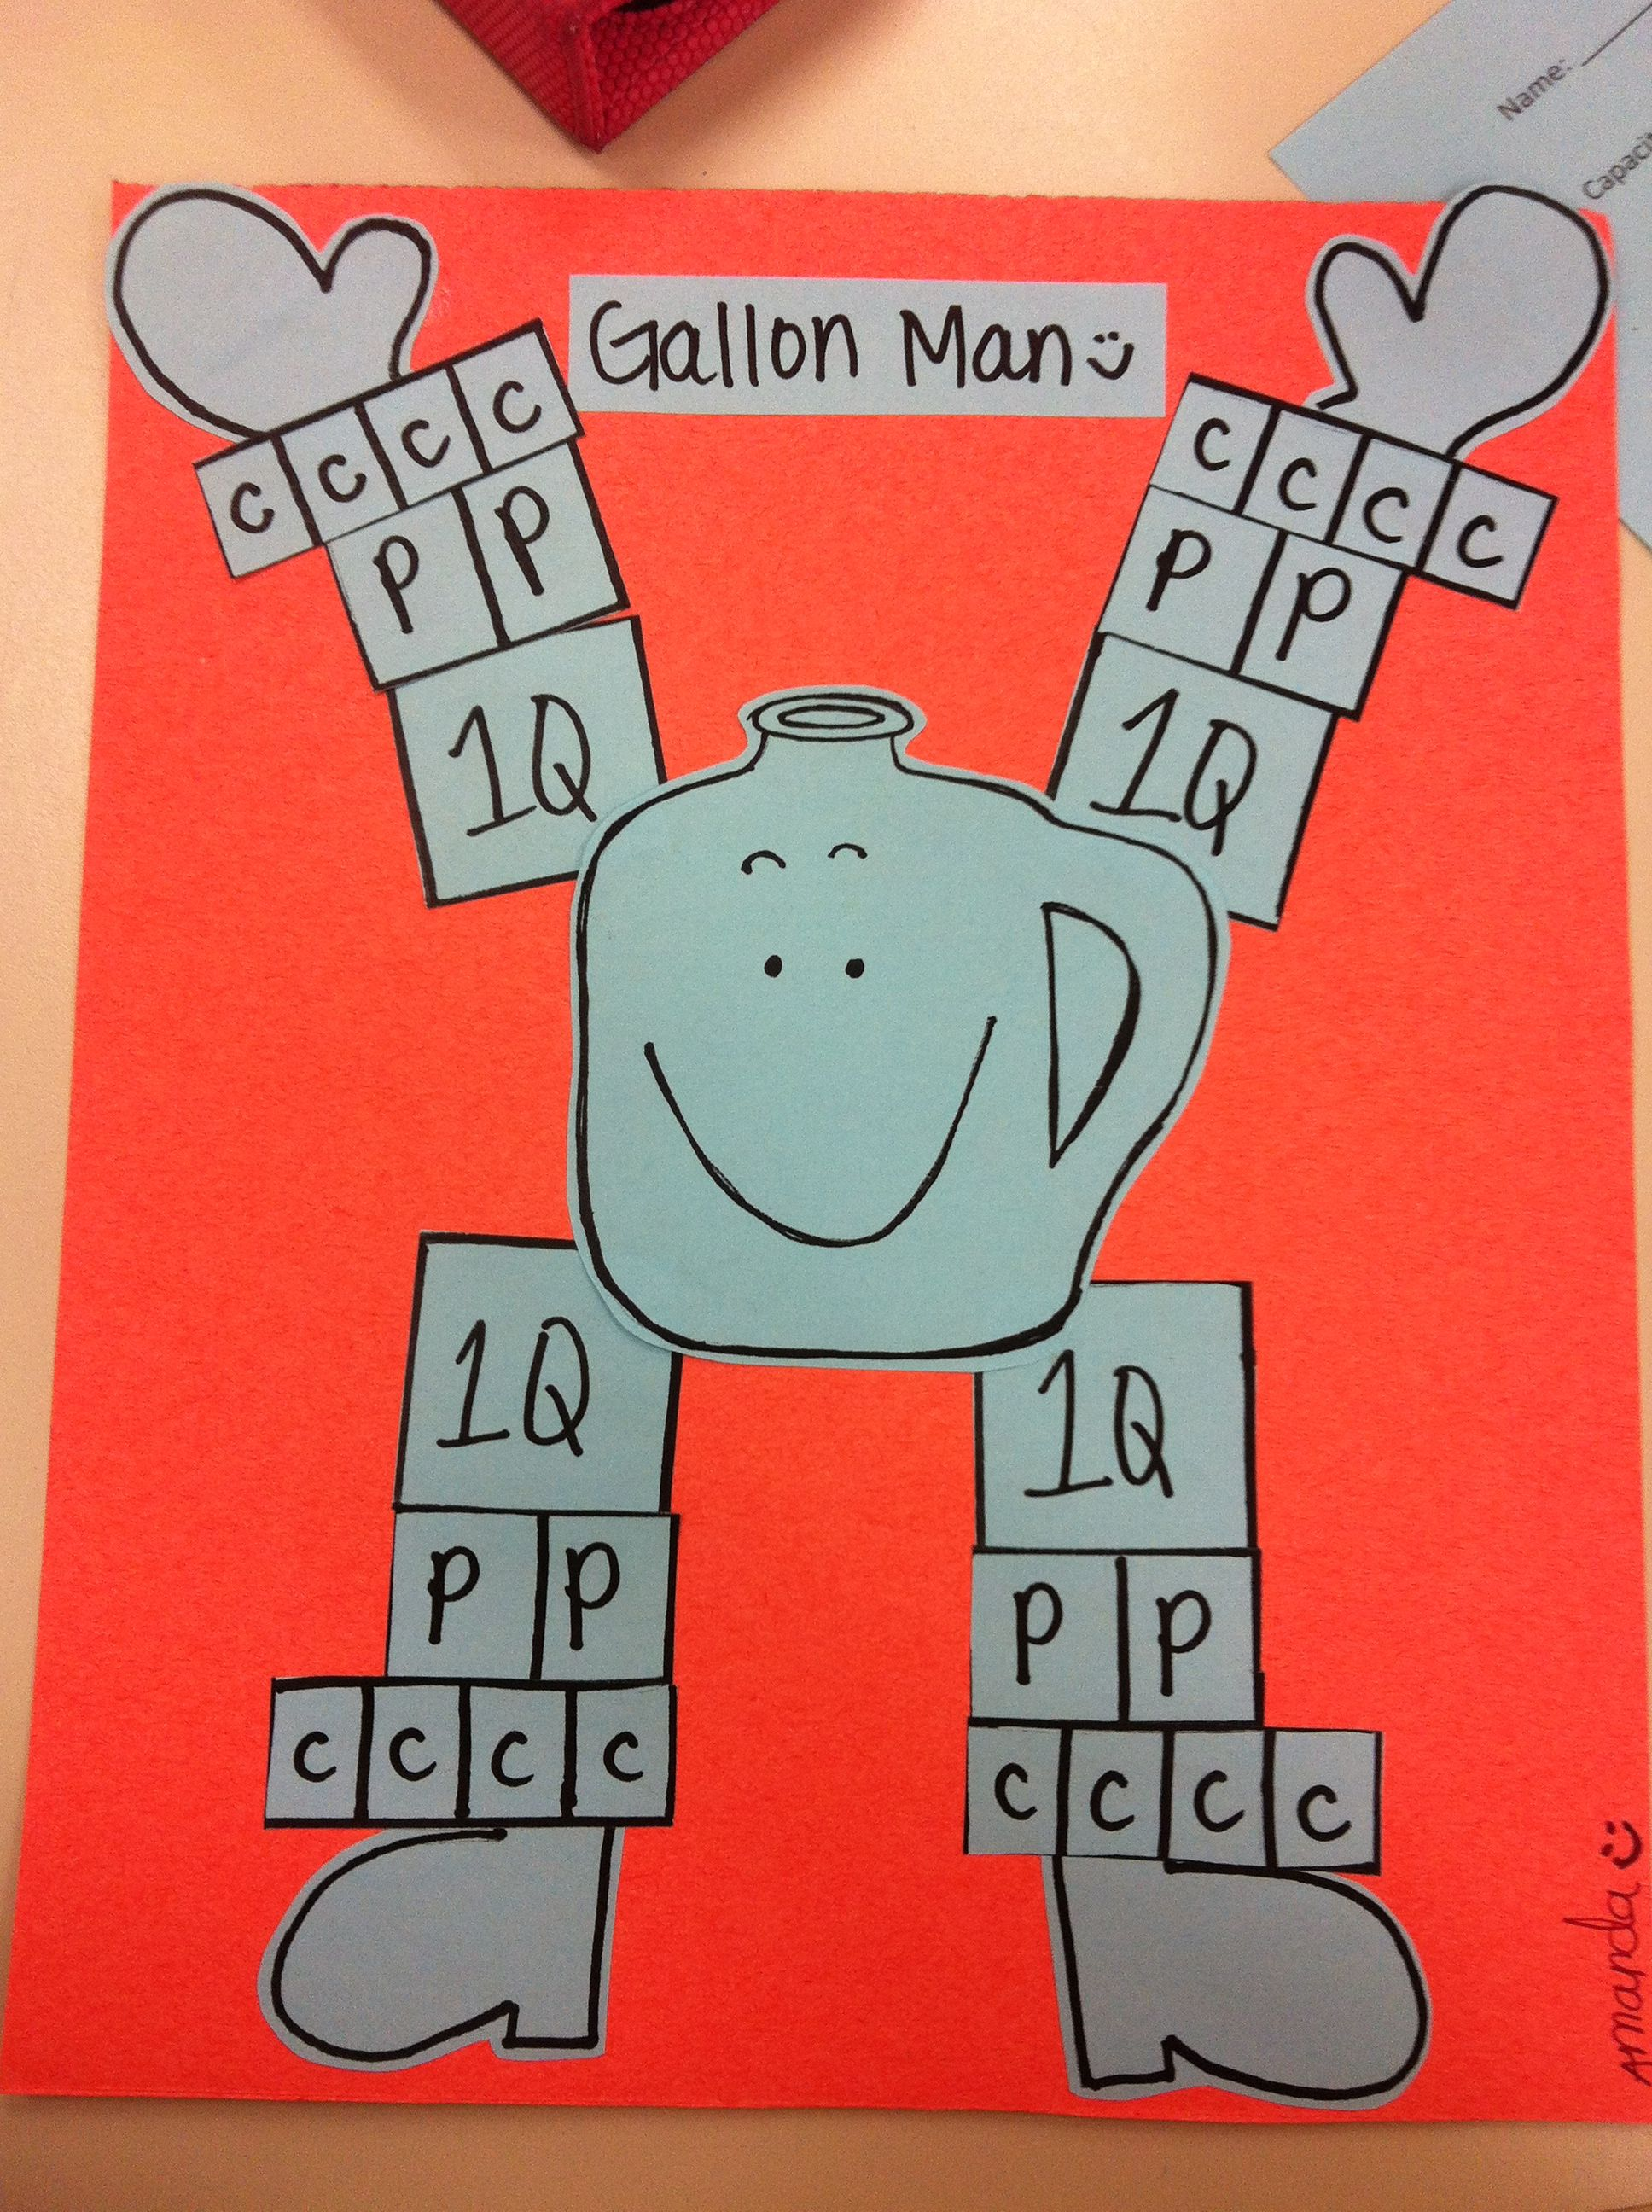 It is a picture of Handy Gallon Man Drawing